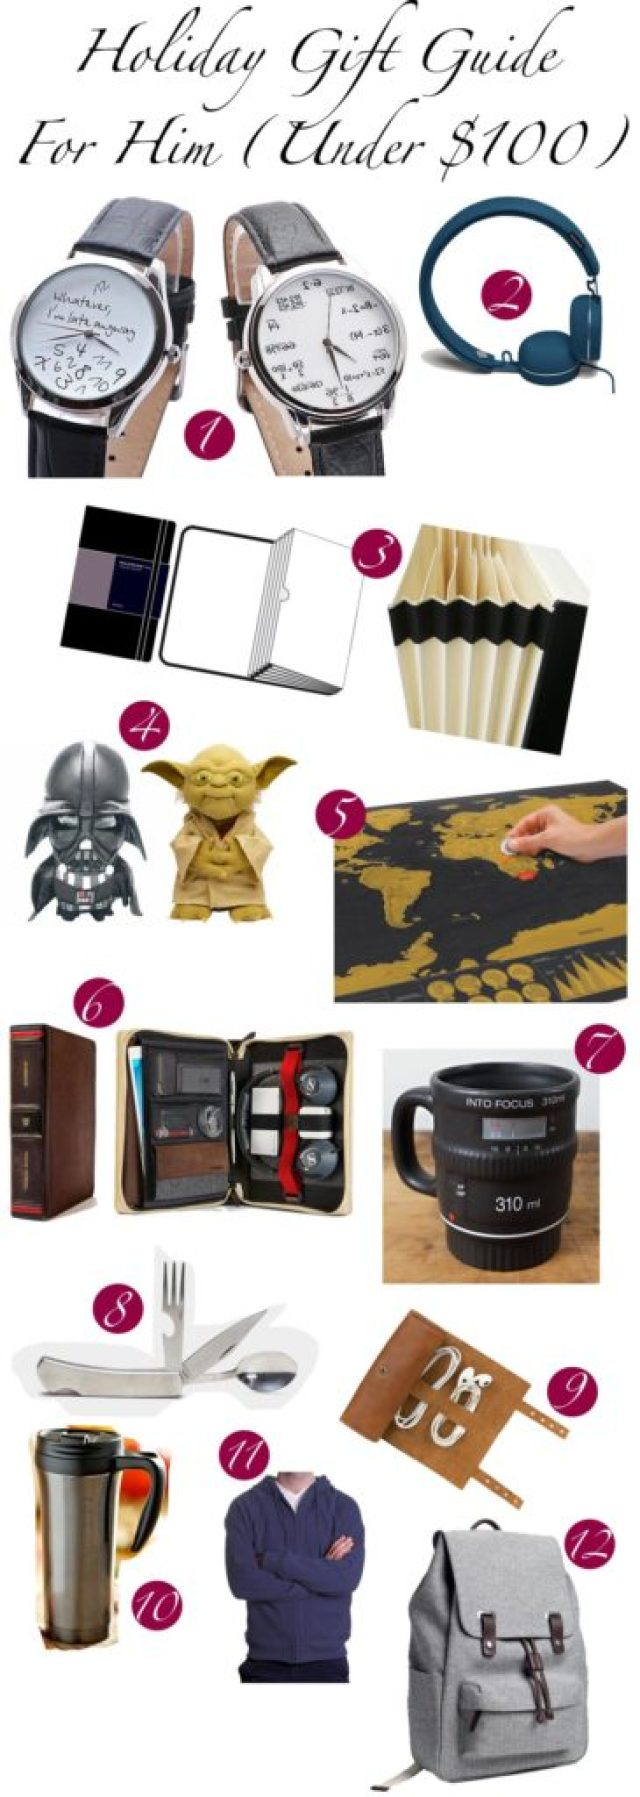 Christmas-2013-Man-Him-Men-Gift-Guide-Giving